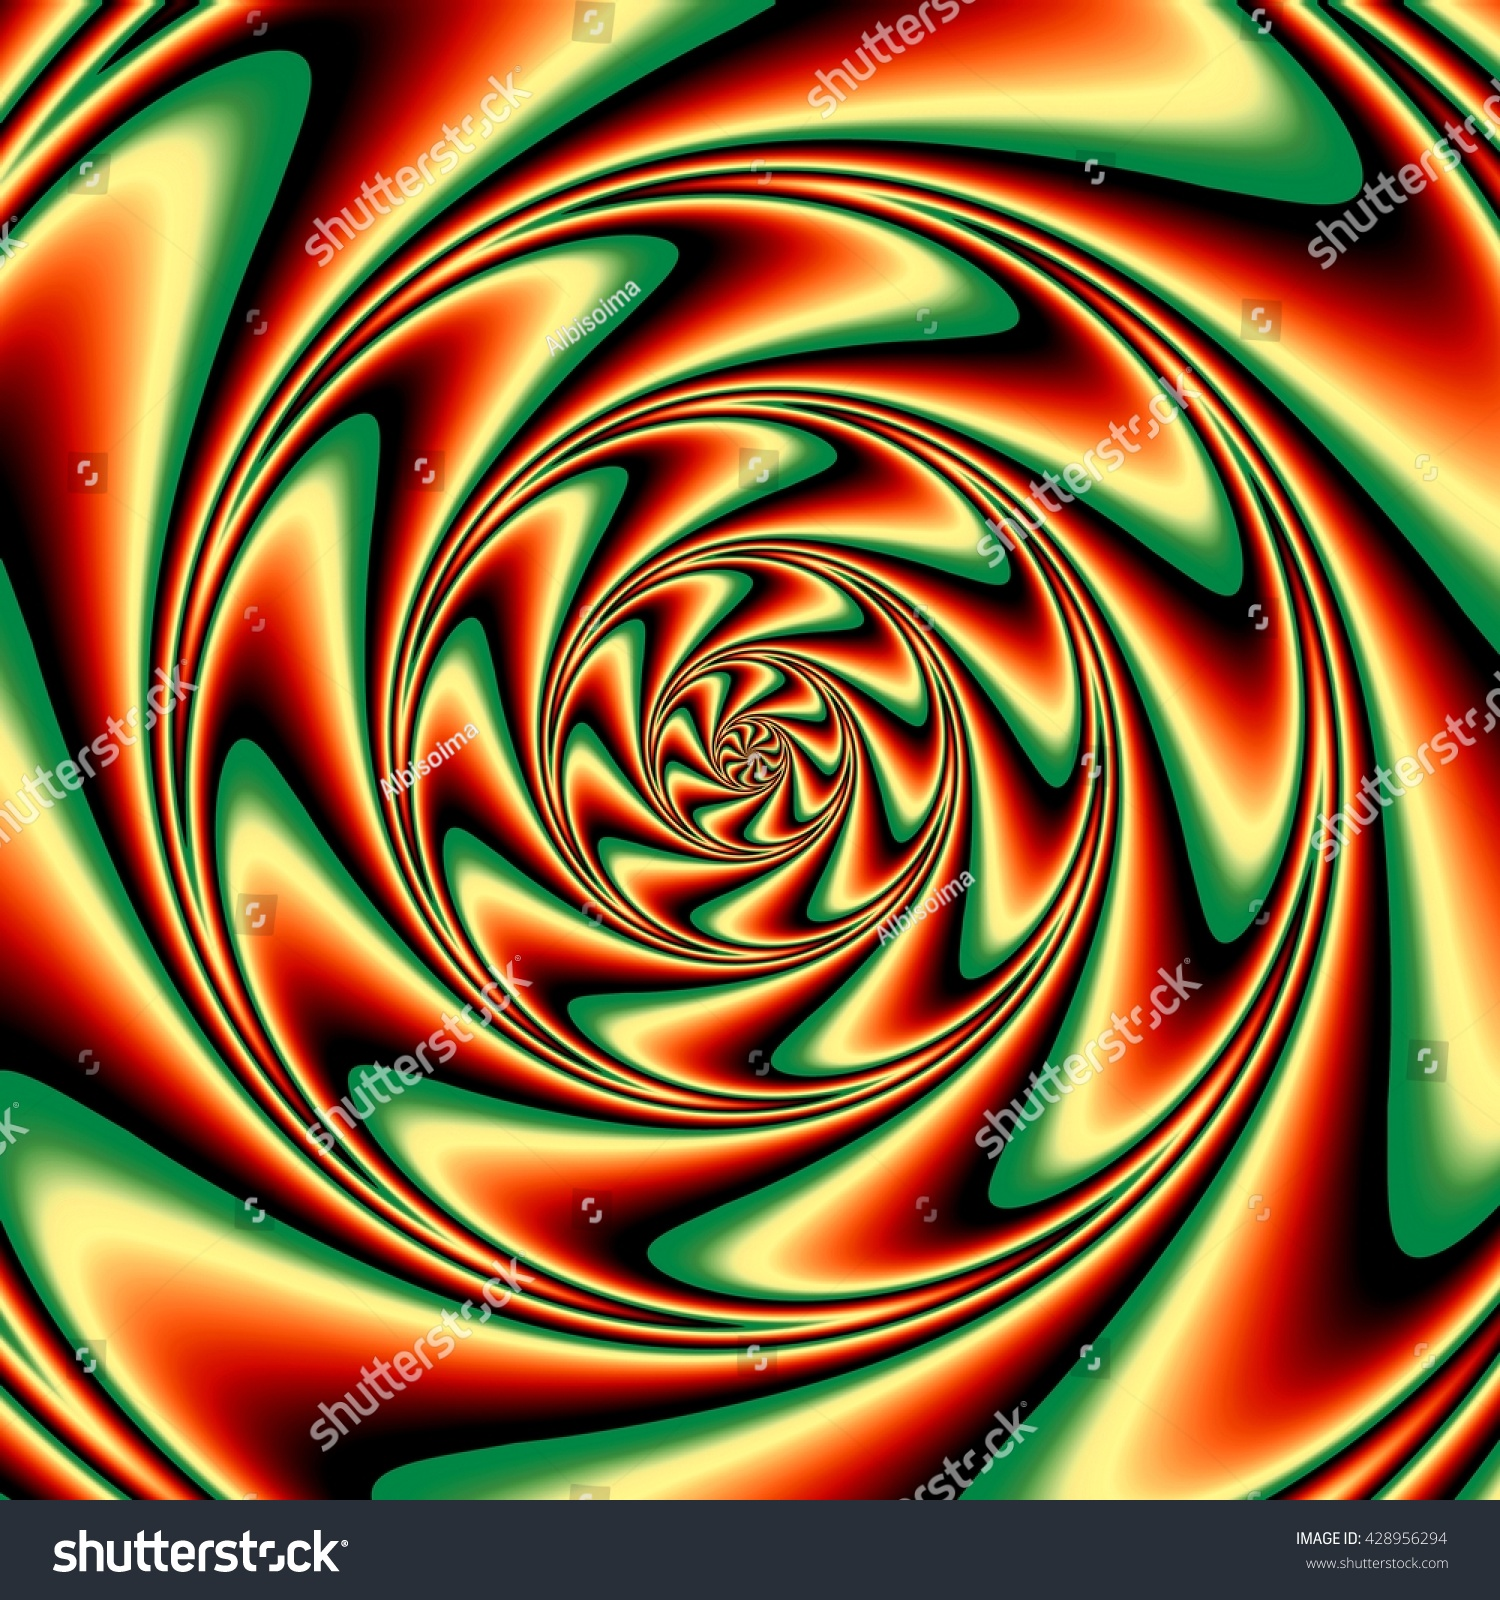 Abstract insane psychedelic shapes crazy wallpaper abstract insane psychedelic shapes as crazy wallpaper voltagebd Gallery